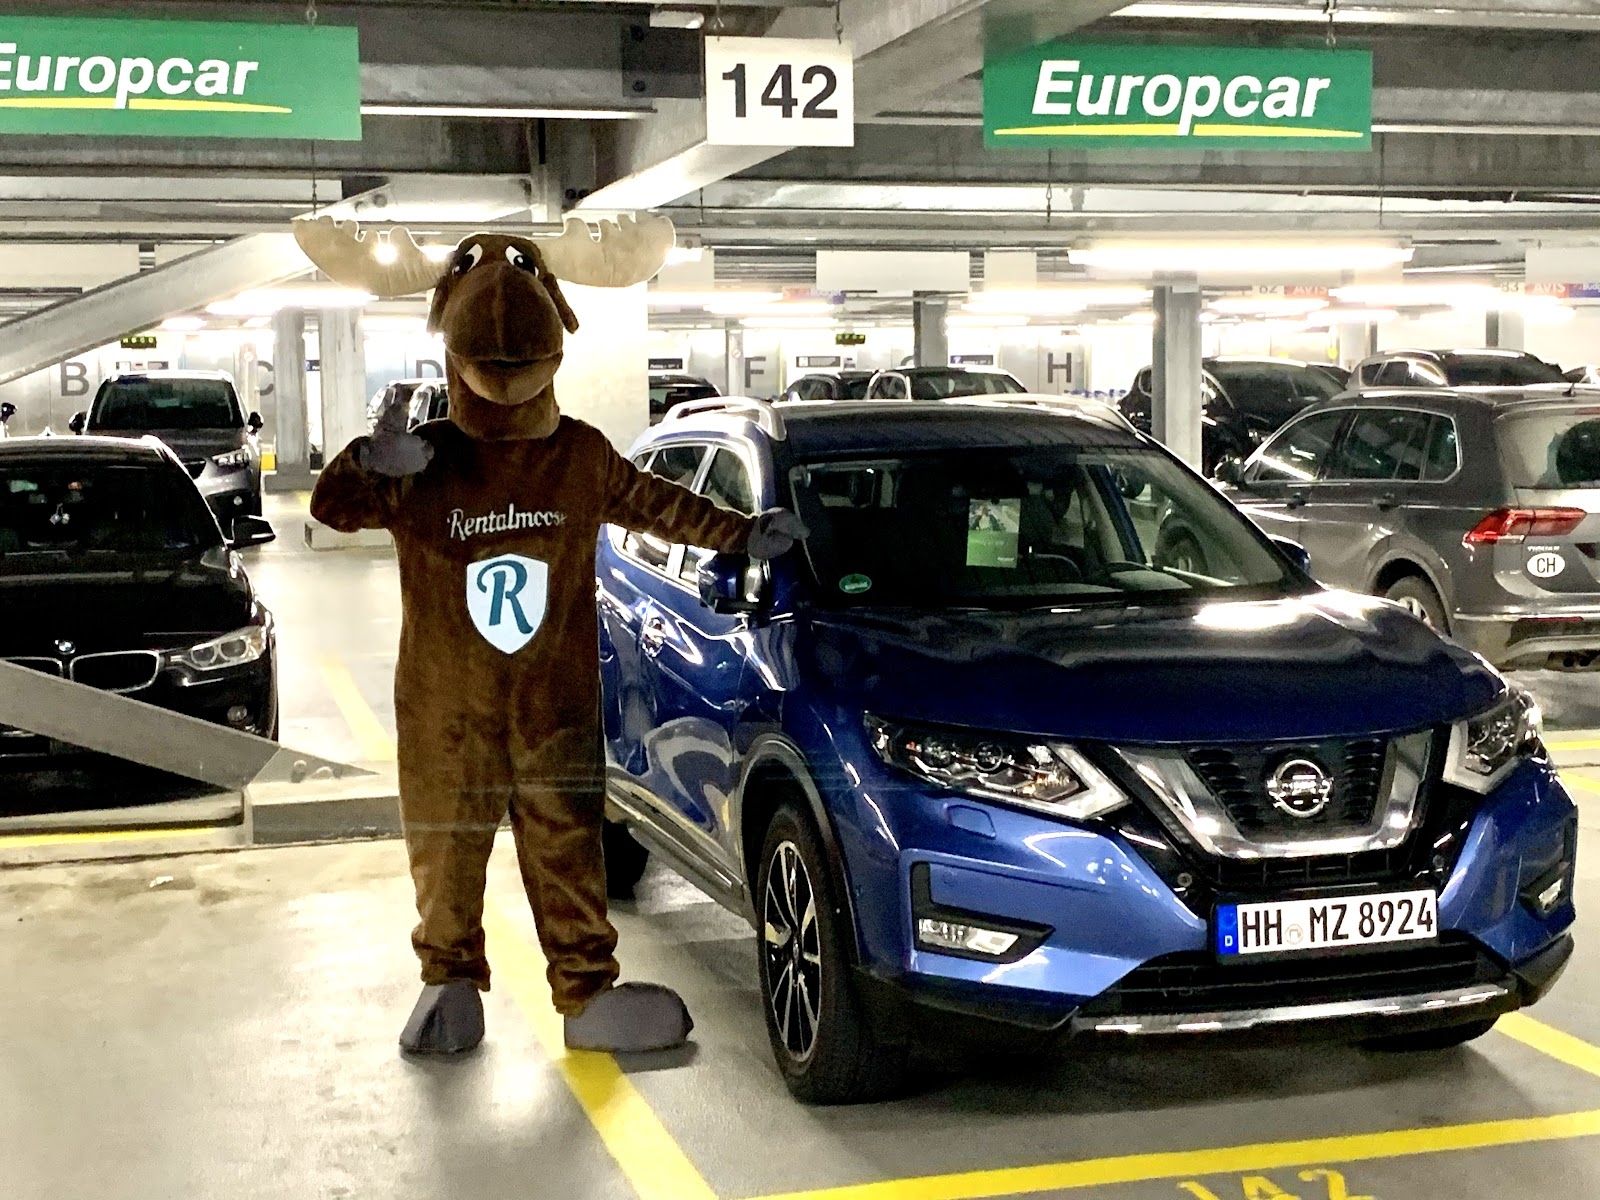 Rental Moose mascot posing in undeground garage, next to blue Nissan rental car by Europcar. Rental Moose is a global car rental broker which will help you get the best deal on your next rental car.